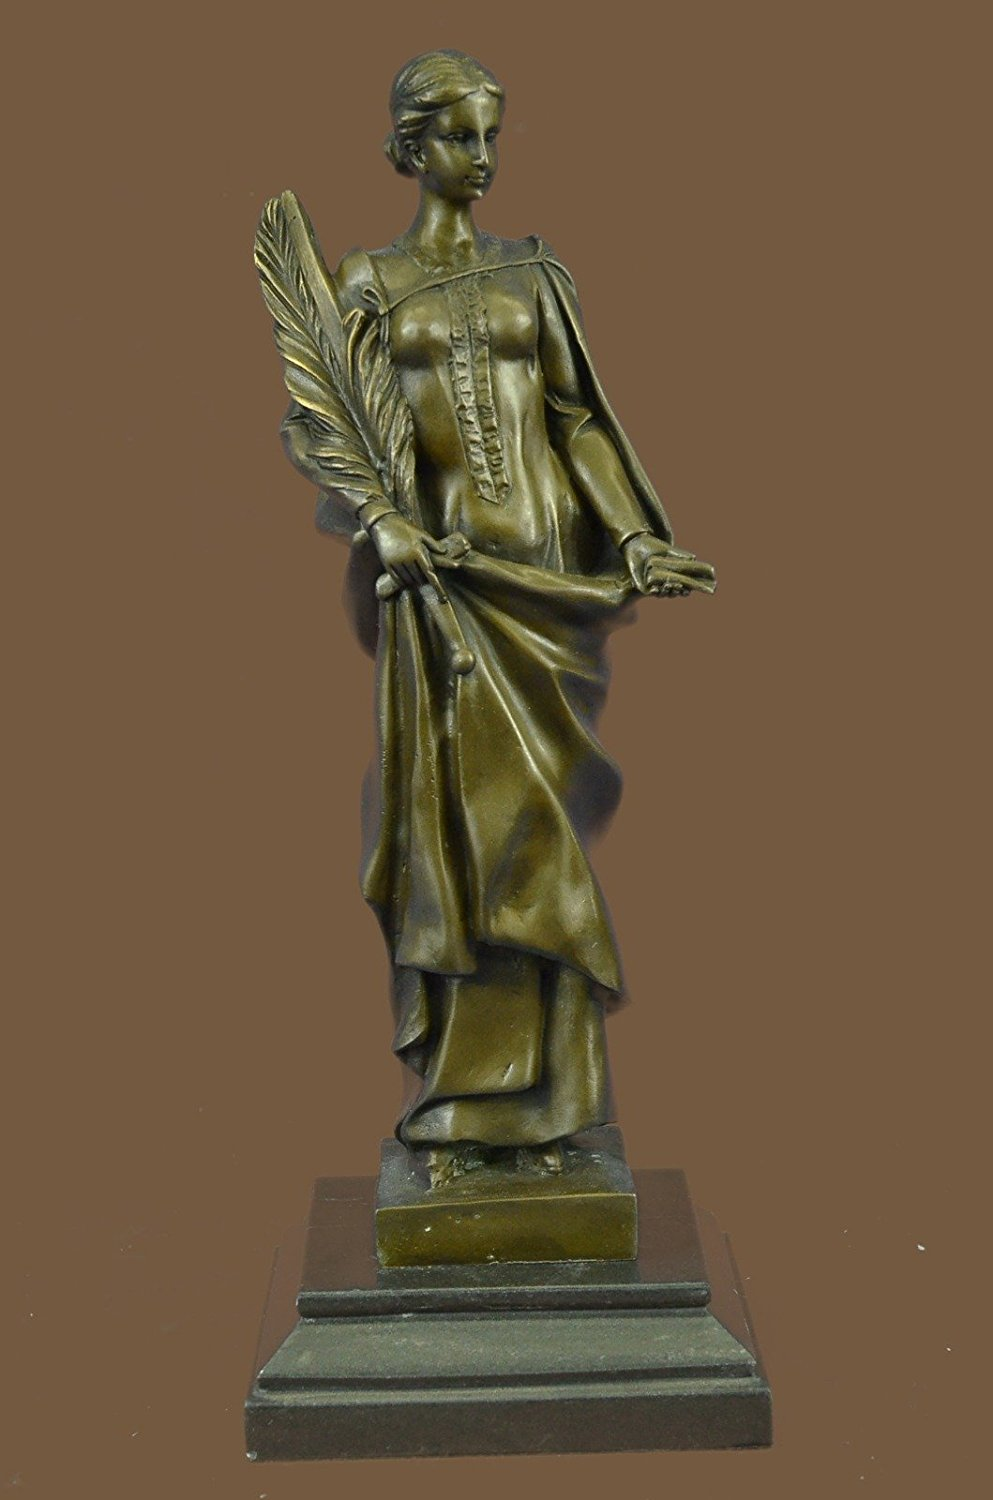 ...Handmade...European Bronze Sculpture Signed Kassin Declaration Of Peace Young Woman With Sword And Lantern Art (1X-STE-240) Bronze Sculpture Statues Figurine Nude Office & Home Décor Collectibles